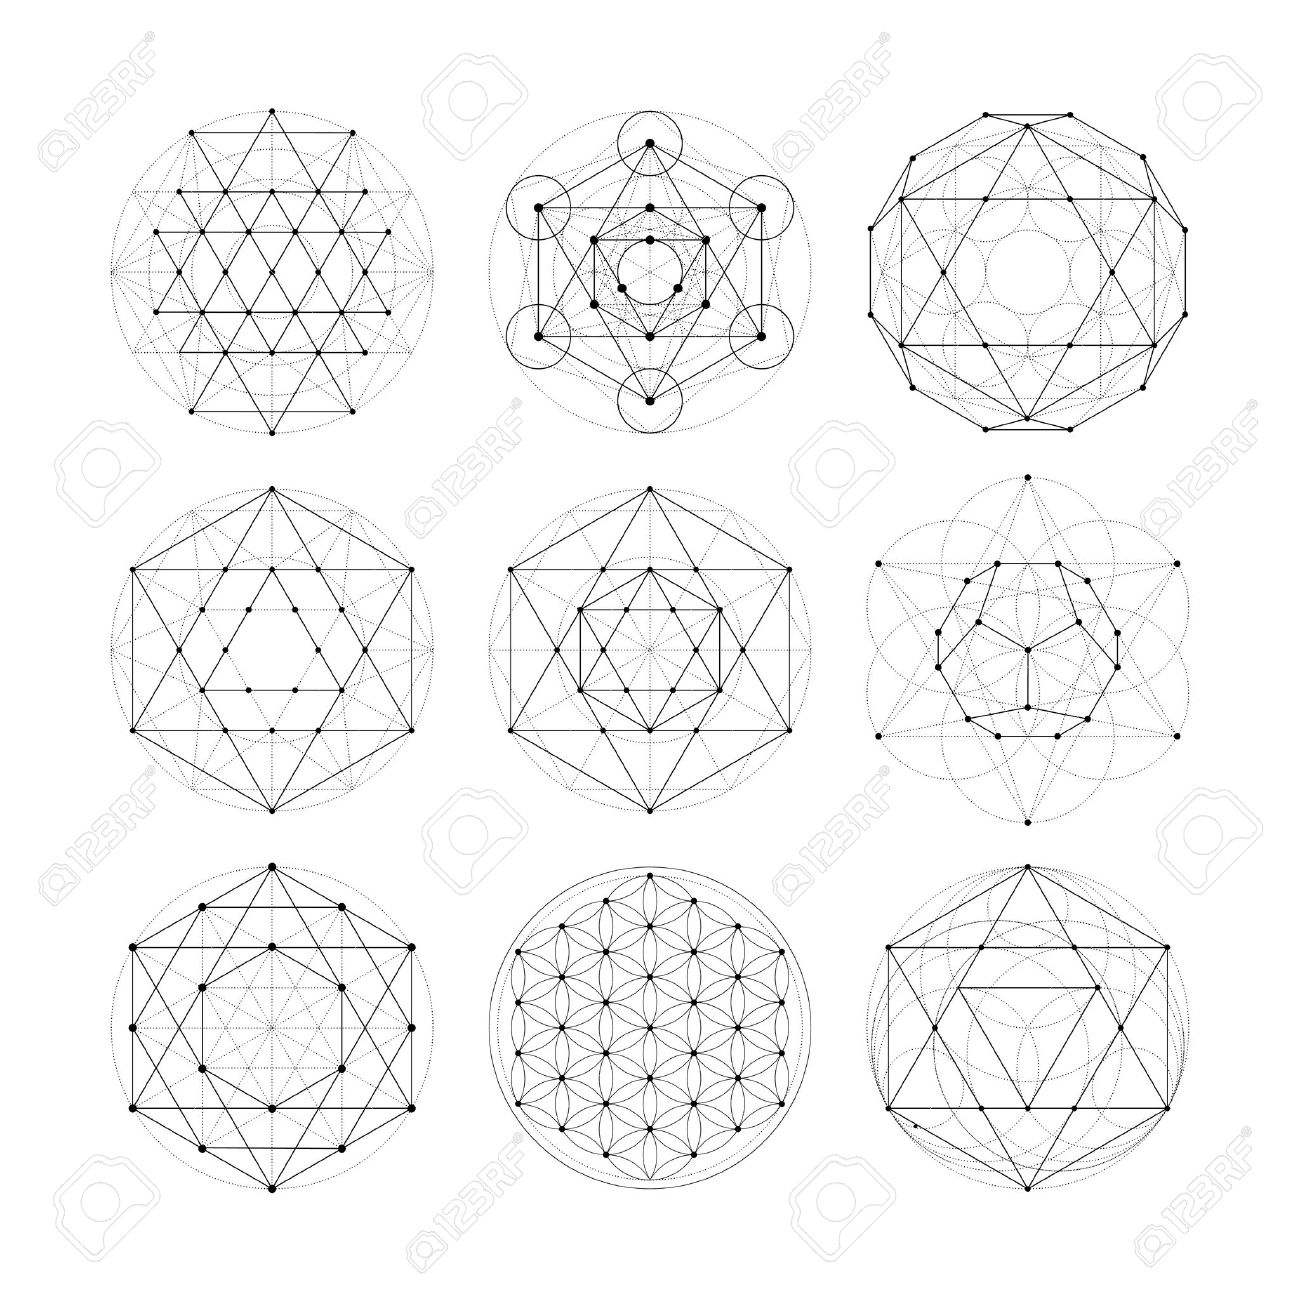 Numerology astrology signs and symbols. Hipster esoteric sacred geometry abstract pattern illustration. Sacral flower of life symbol. Metatrons Cube. Banque d'images - 56301701